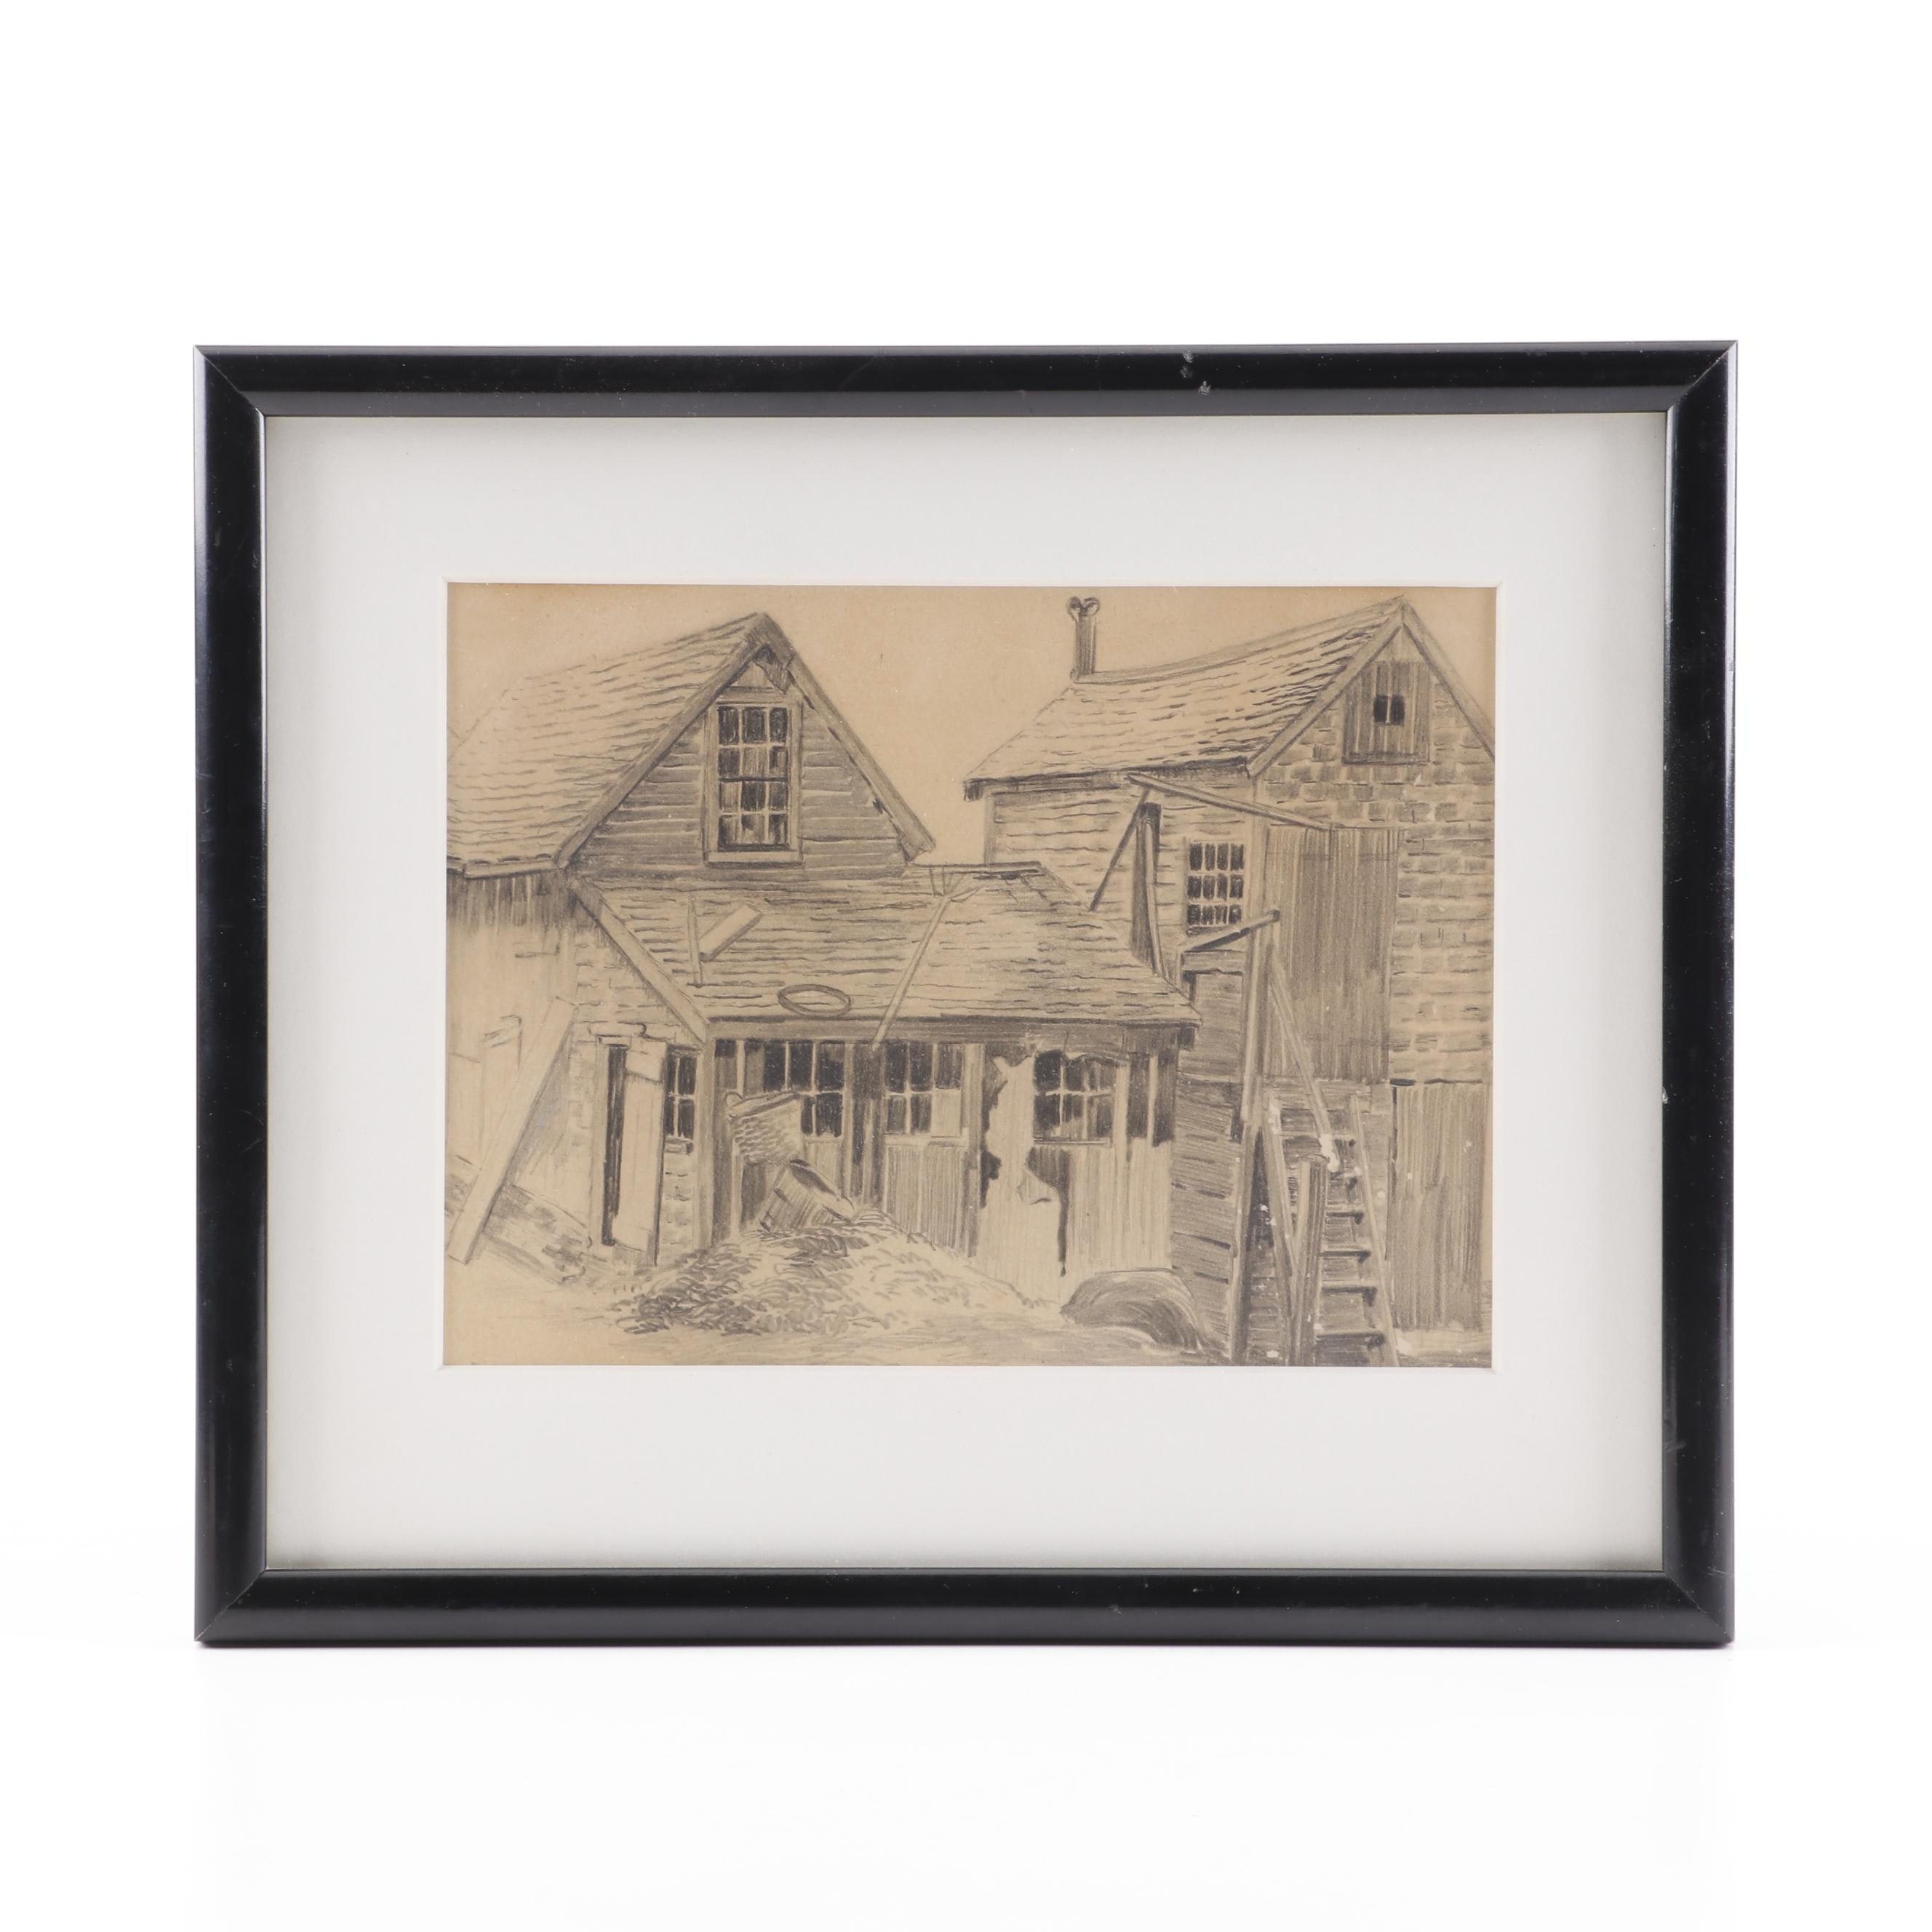 Graphite Drawing of Farm Buildings